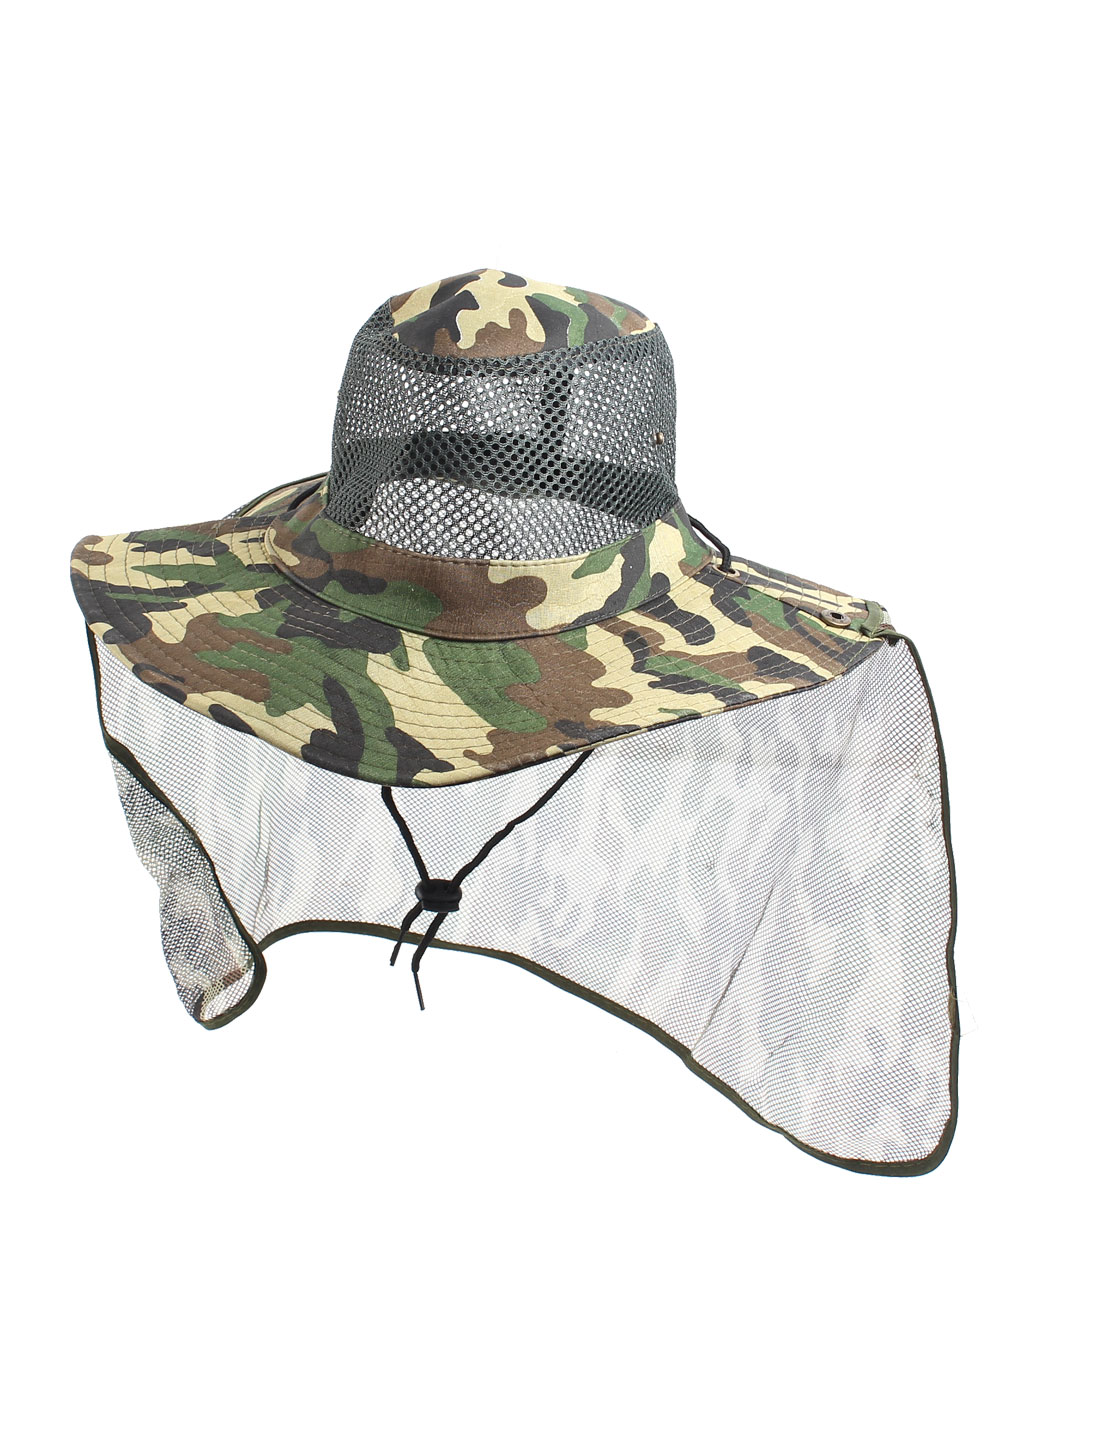 Bicycling-Camouflage-Print-Mesh-Flap-Design-Wide-Brim-Hat-Army-Green